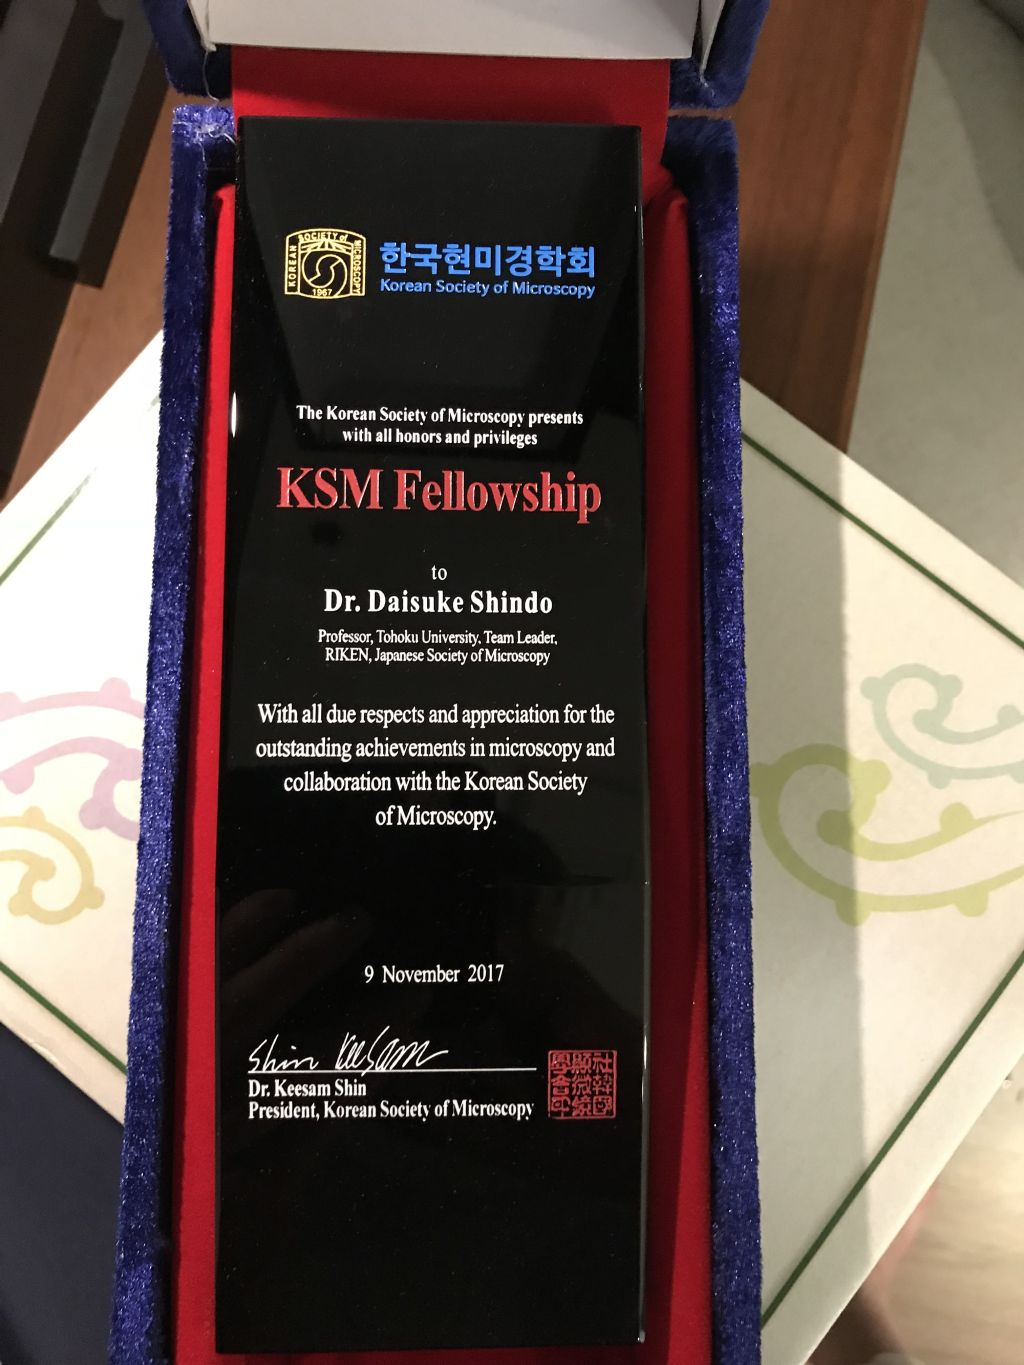 shindoKSMfellowship